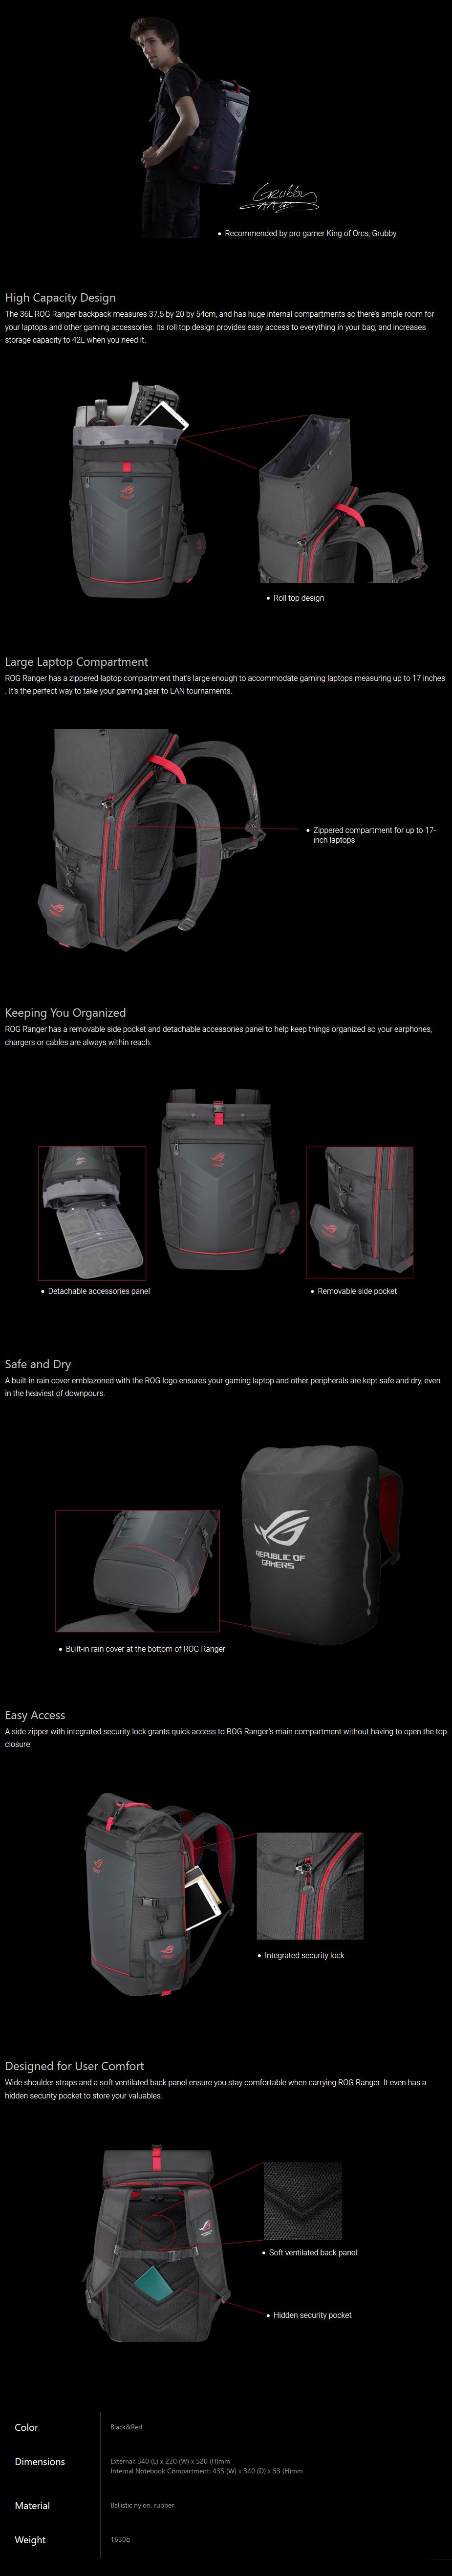 """ASUS ROG RANGER Backpack for 17"""" Devices - Overview 1"""